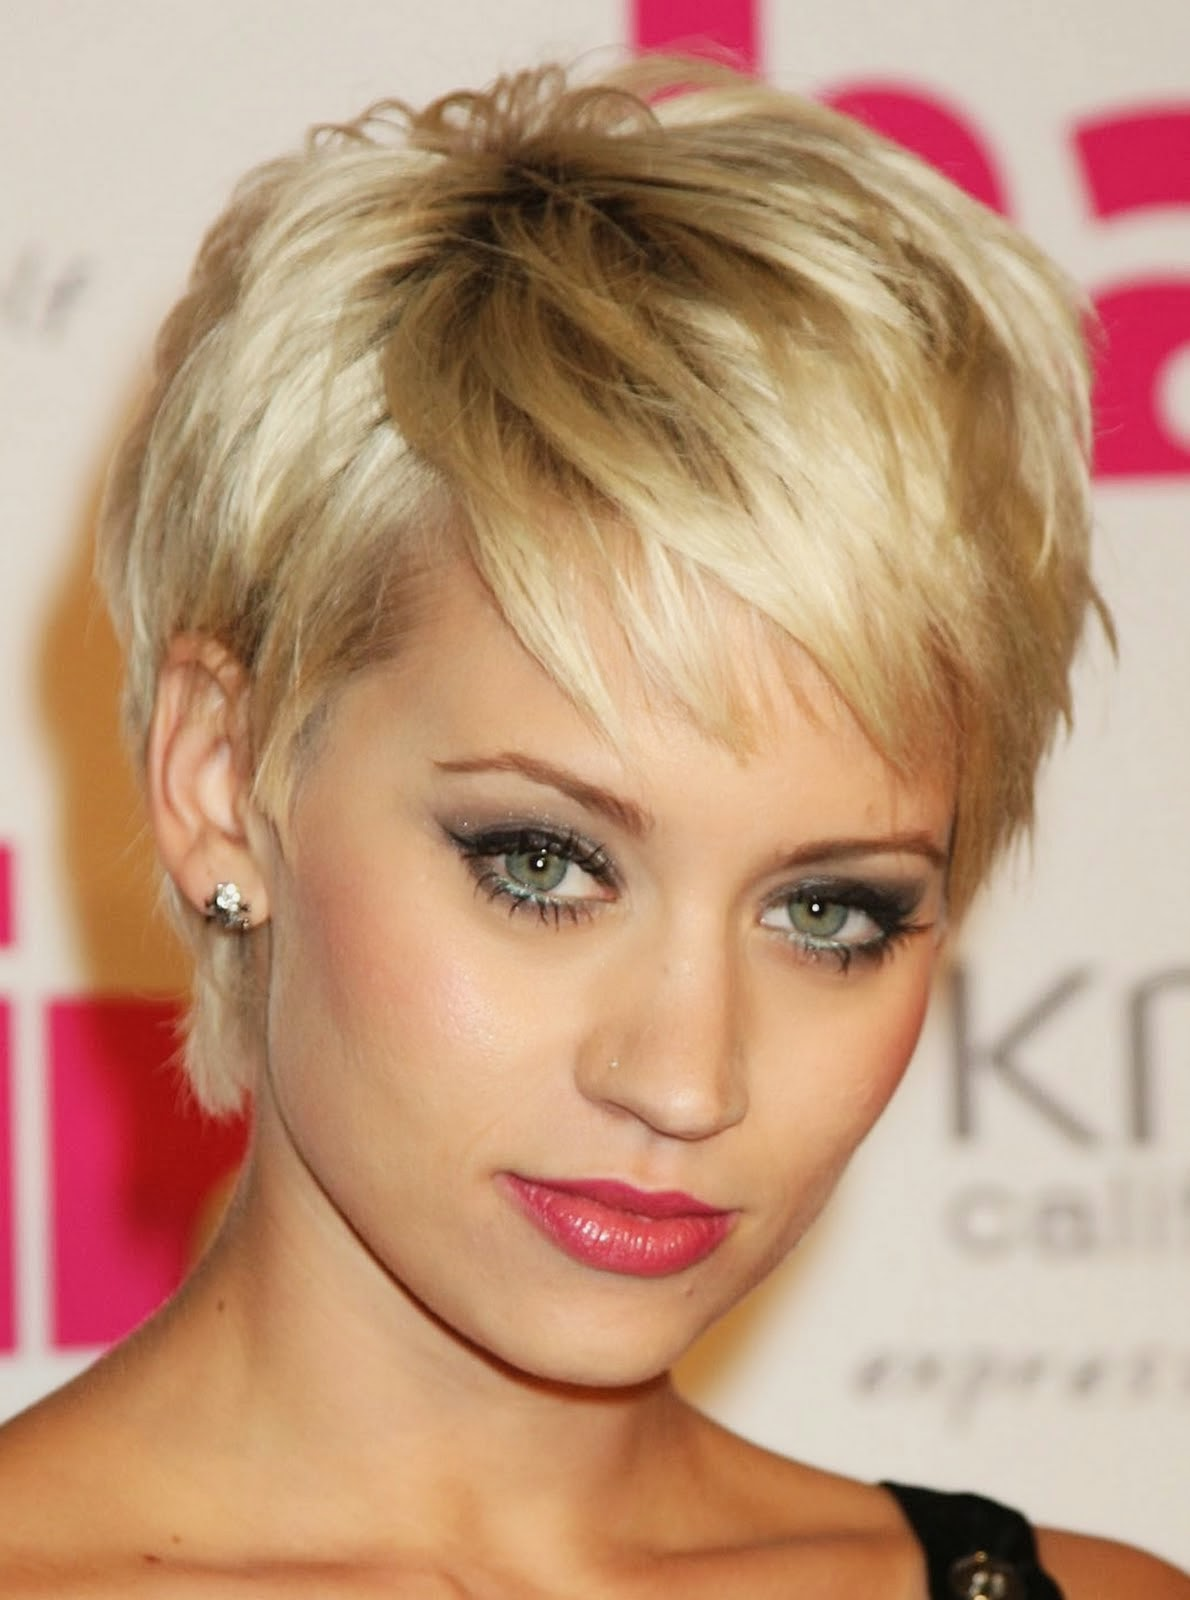 Hair Styles For Short Hair : Short Hairstyles for Fine Hair Latest Hairstyles